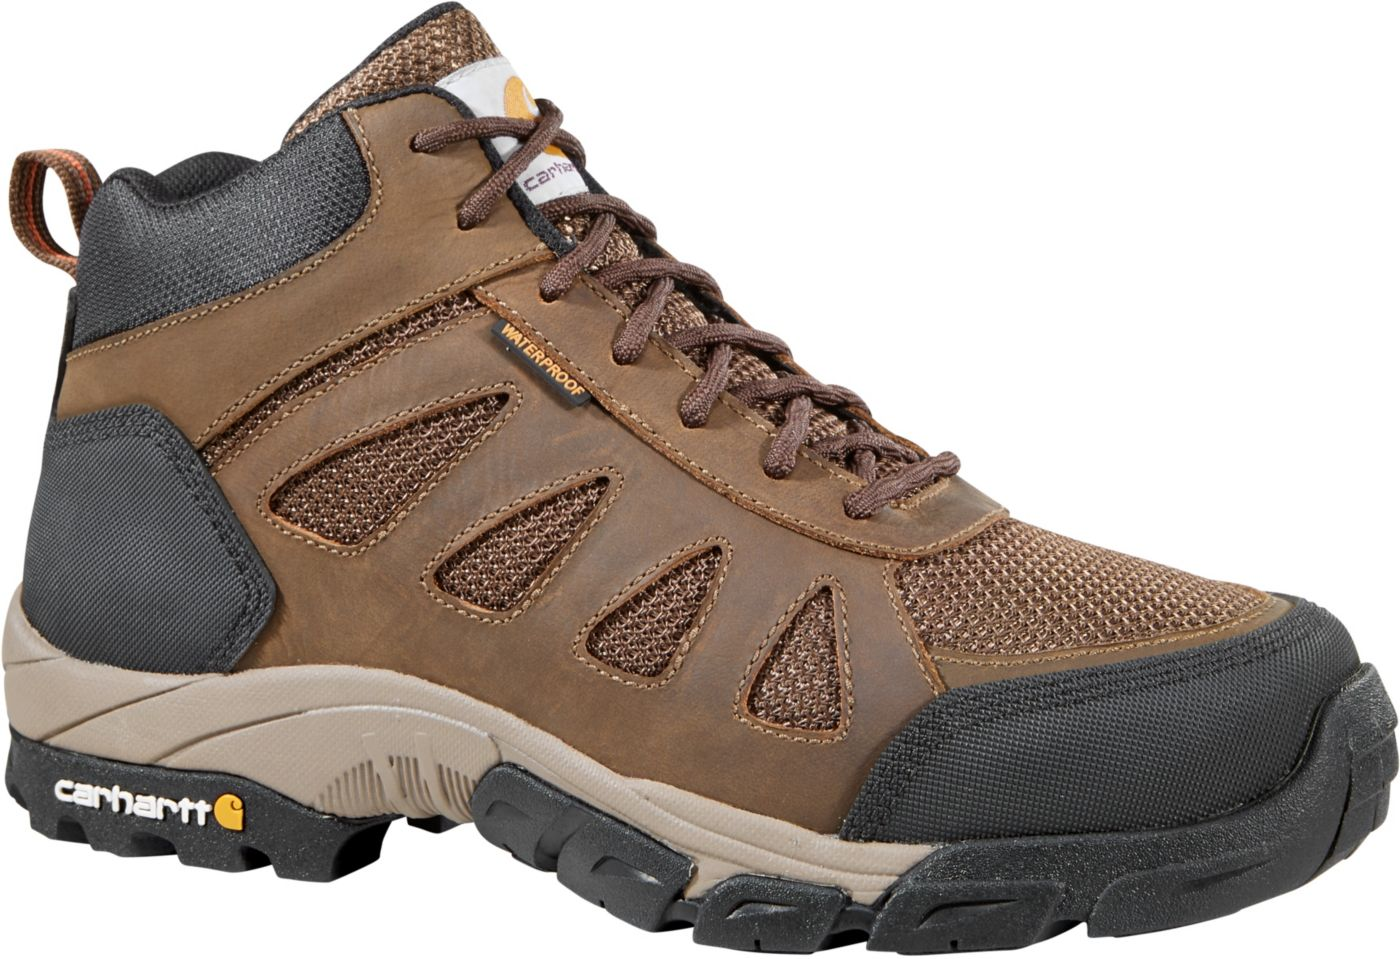 Carhartt Men's Lightweight Mid Hiker Waterproof Work Boots